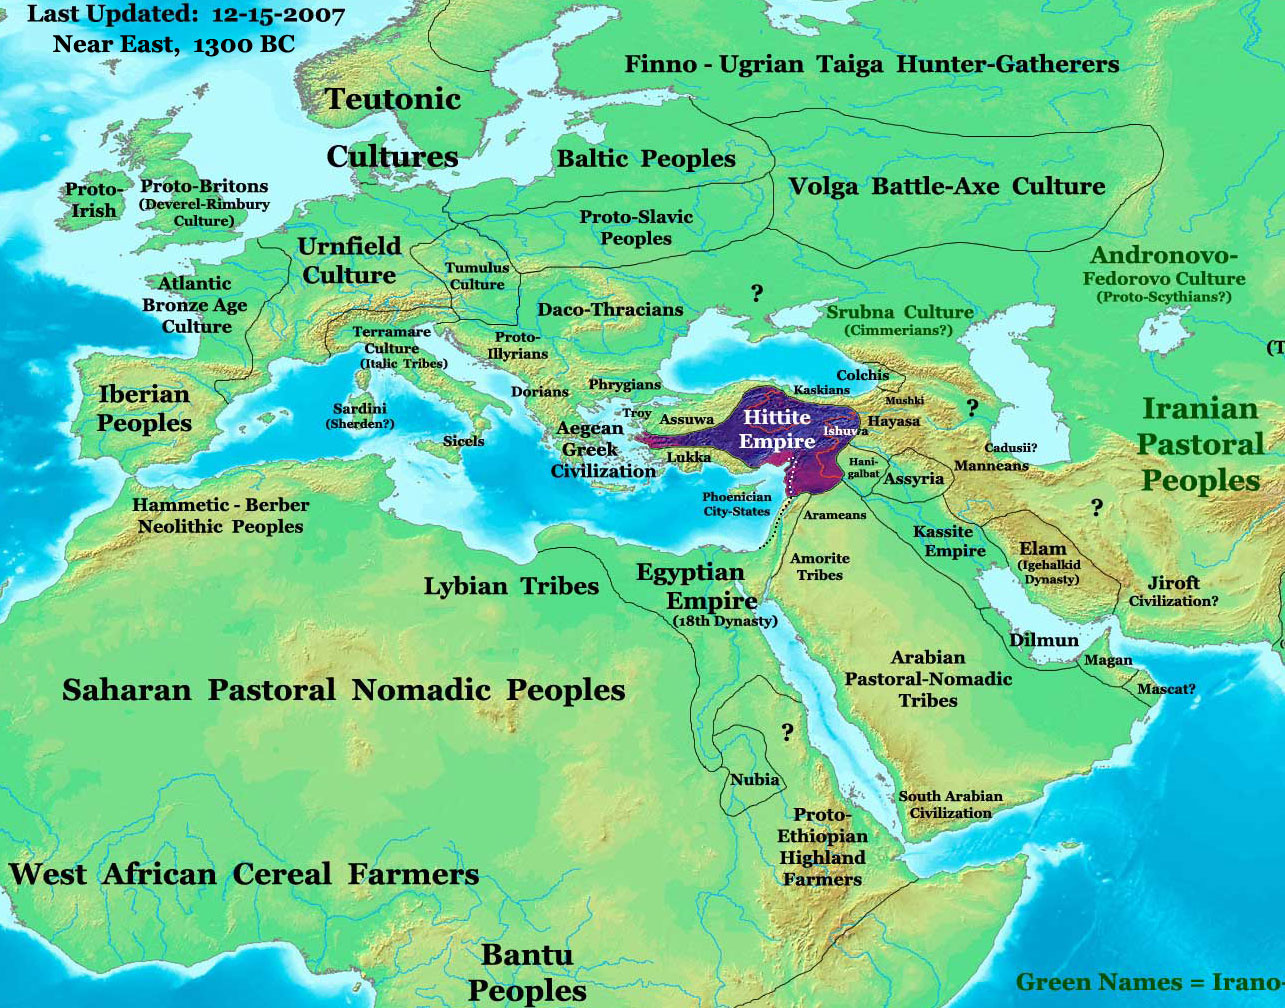 hittite empire in  bc ancient history maps. world history maps by thomas lessman